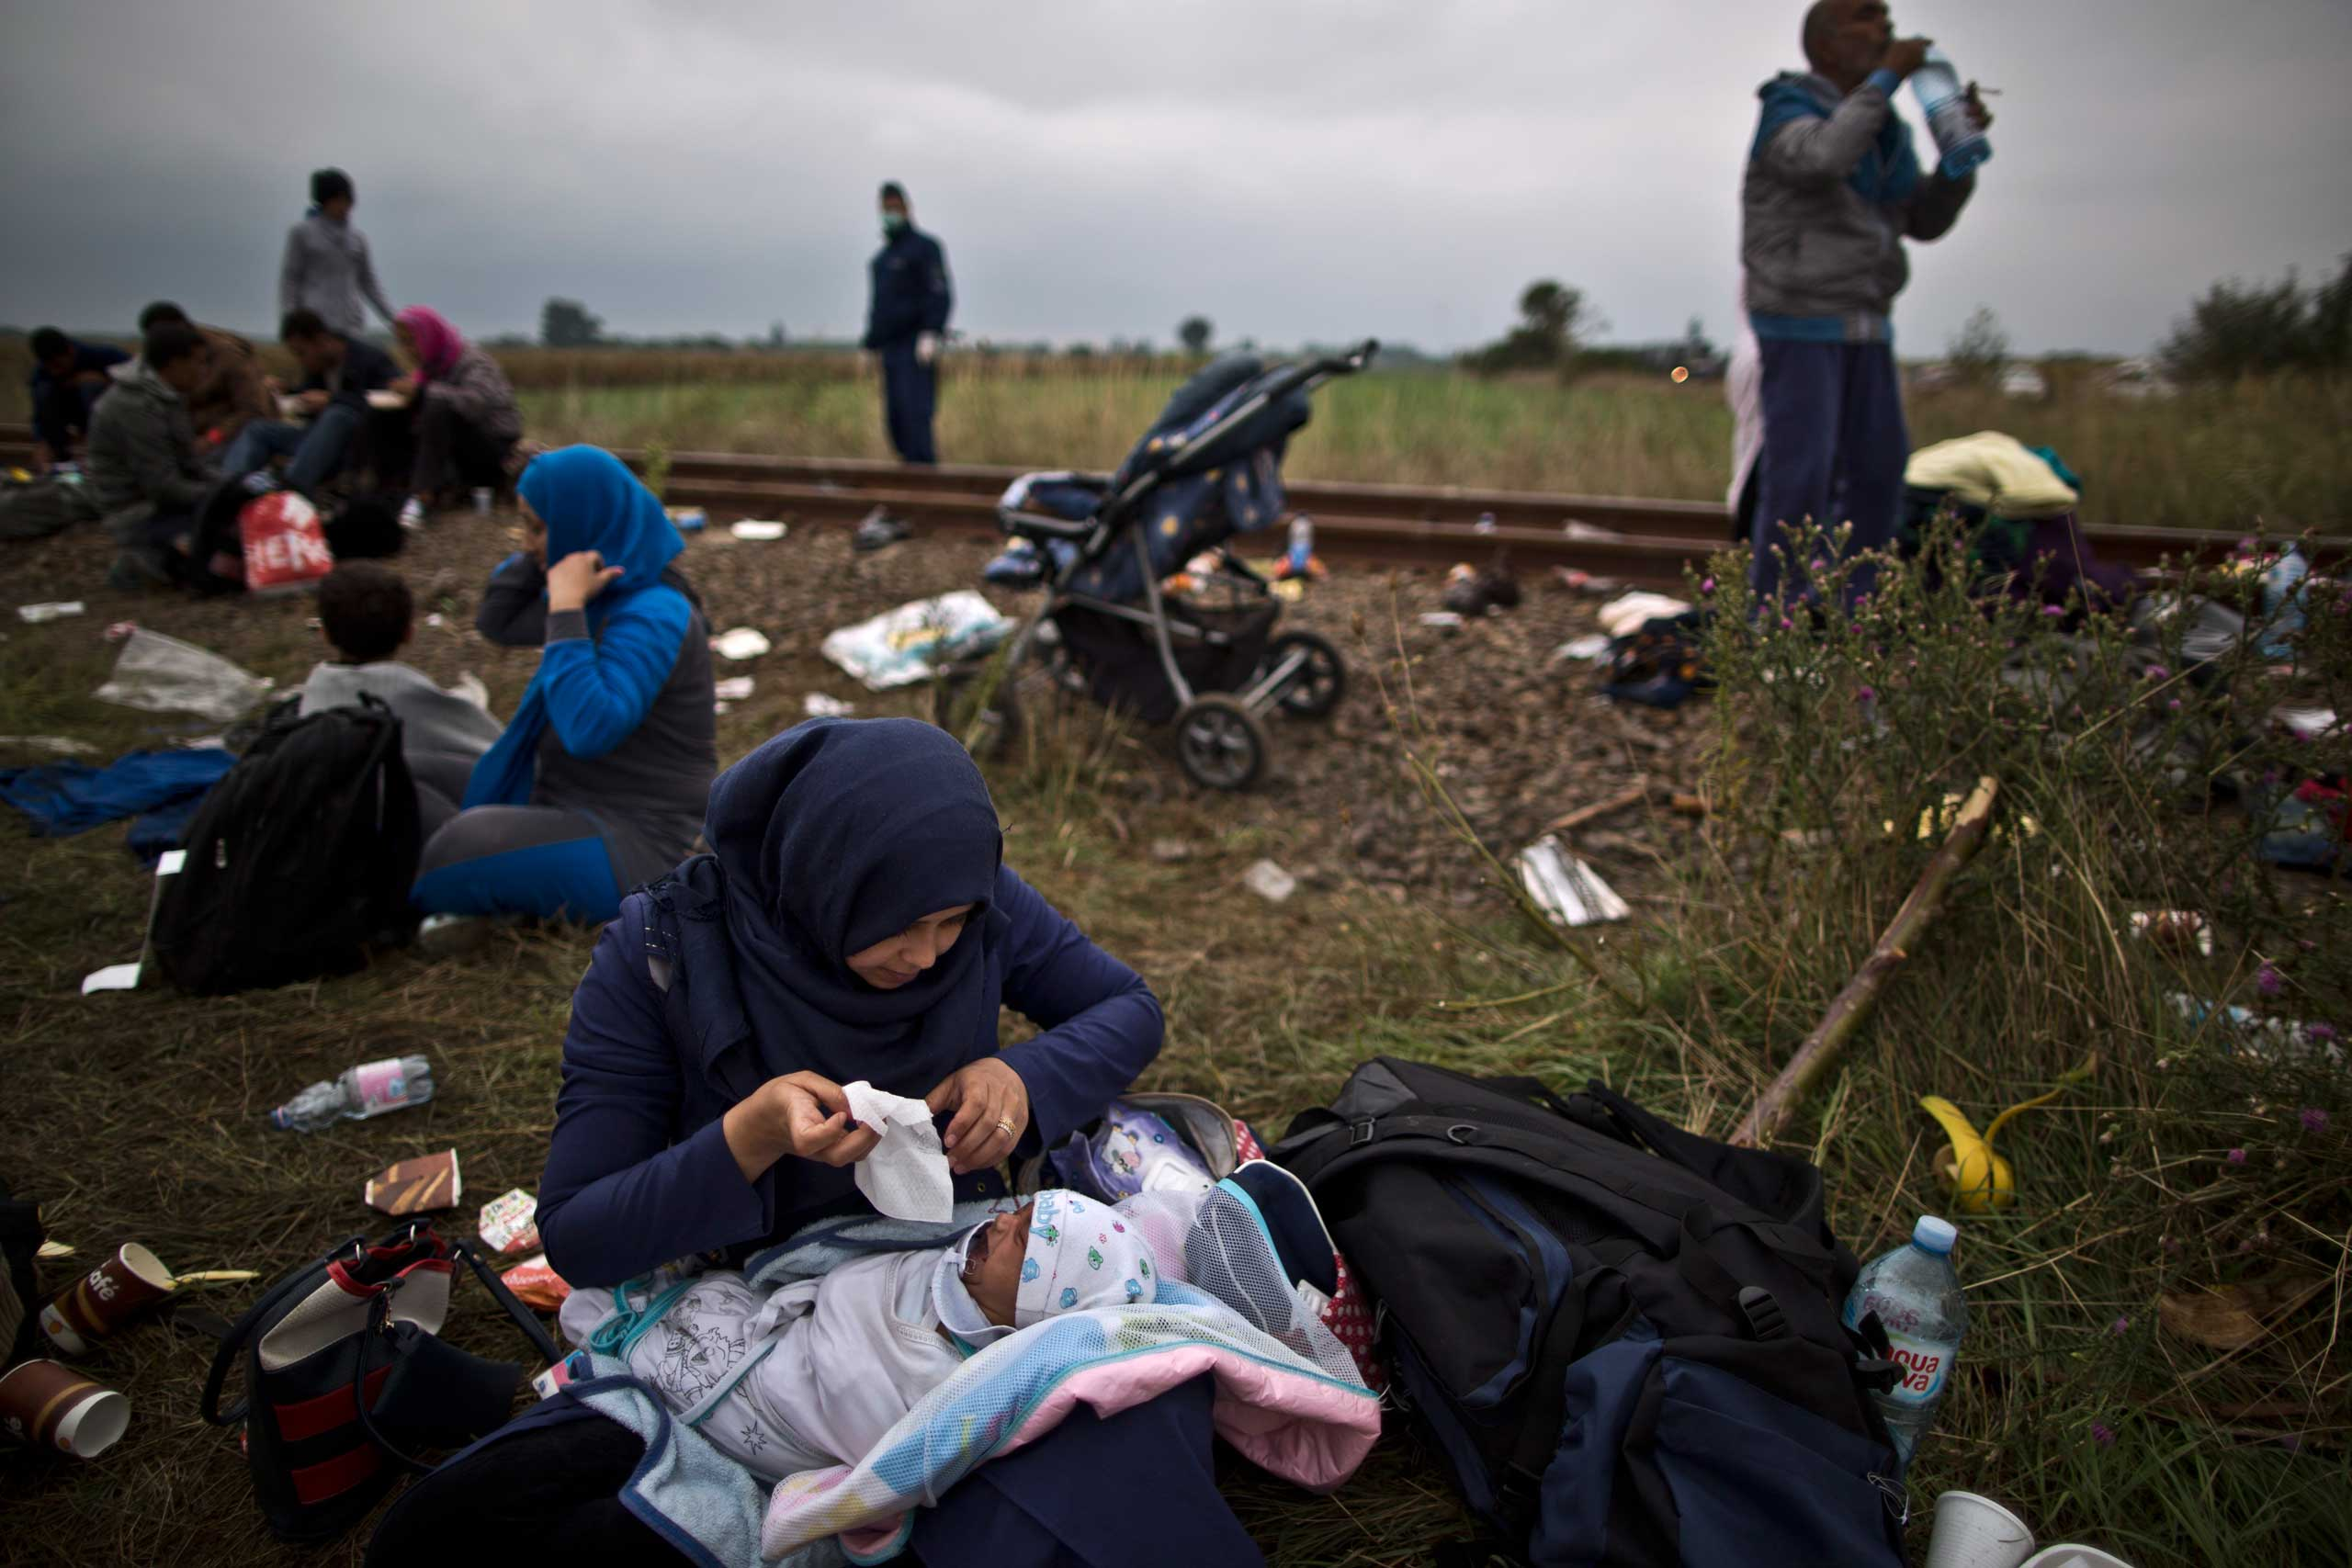 Iraqi refugee Umm Fadil tends to her crying son Ahmad, 41 days, while resting by a railway track after they crossed the Serbian-Hungarian border near Roszke, on Sept. 11, 2015.